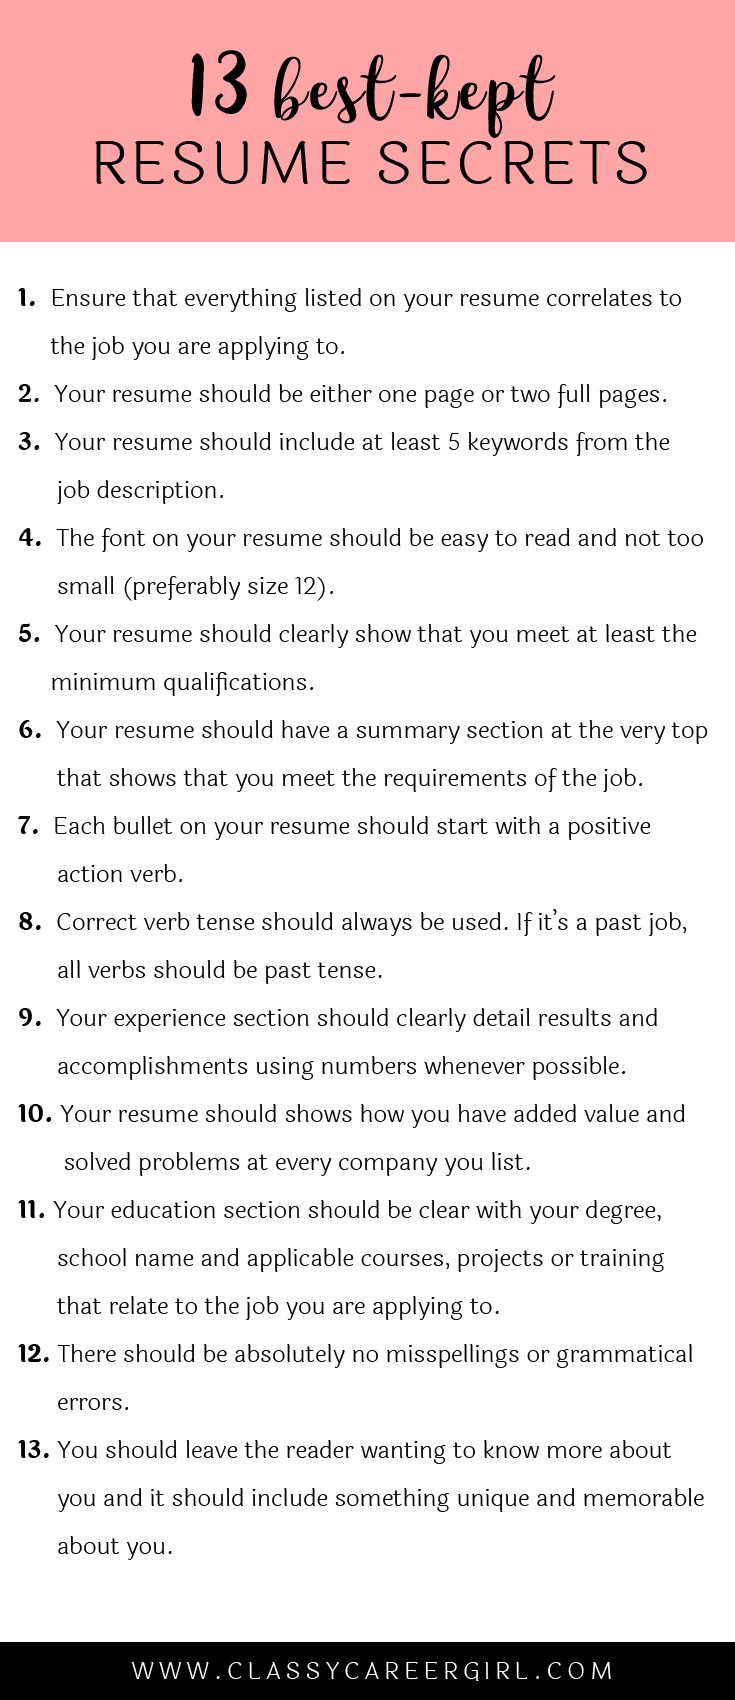 Opposenewapstandardsus  Gorgeous  Ideas About Resume On Pinterest  Cv Format Resume Cv And  With Marvelous Some Hiring Managers Will Toss Your Resume Out If You Dont Know These  With Attractive Resume Objective Statement Examples Also Resume Templet In Addition Resume Types And What Is Resume As Well As Software Developer Resume Additionally Professional Resume Writing Services From Pinterestcom With Opposenewapstandardsus  Marvelous  Ideas About Resume On Pinterest  Cv Format Resume Cv And  With Attractive Some Hiring Managers Will Toss Your Resume Out If You Dont Know These  And Gorgeous Resume Objective Statement Examples Also Resume Templet In Addition Resume Types From Pinterestcom